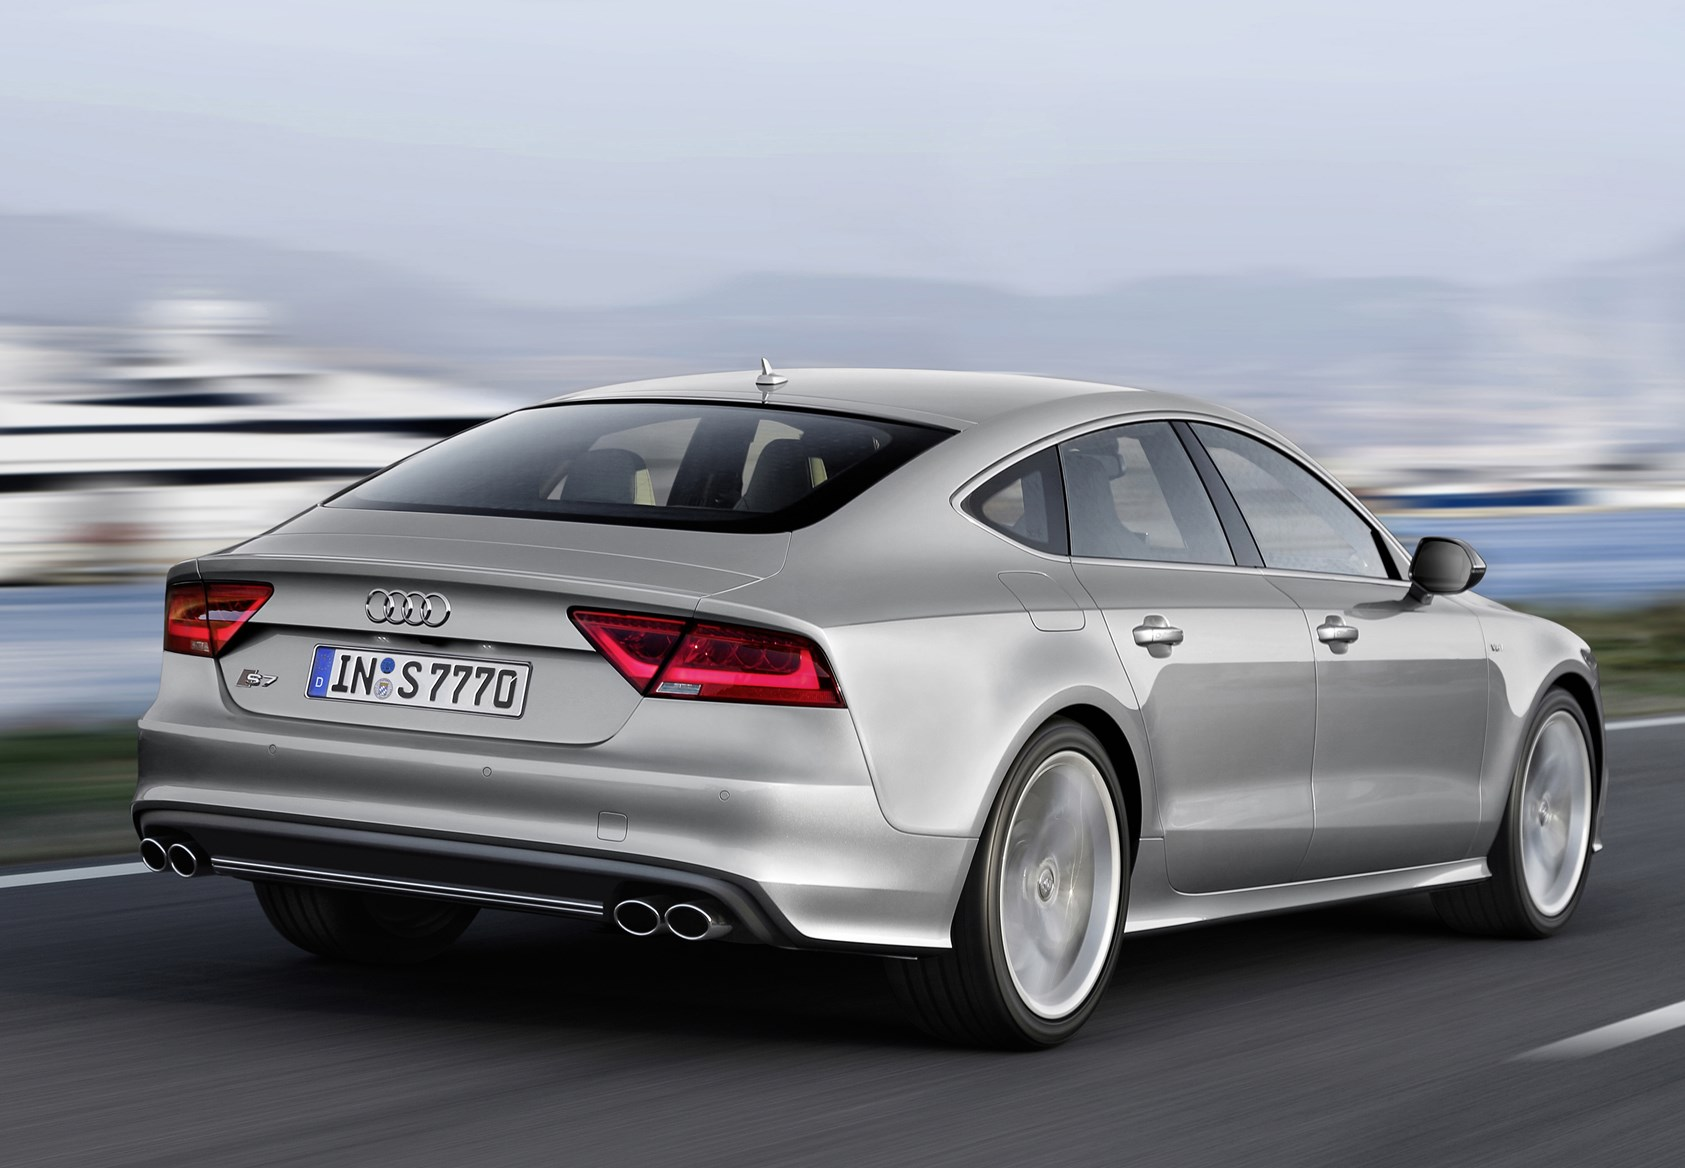 audi a7 s7 2012 running costs parkers. Black Bedroom Furniture Sets. Home Design Ideas